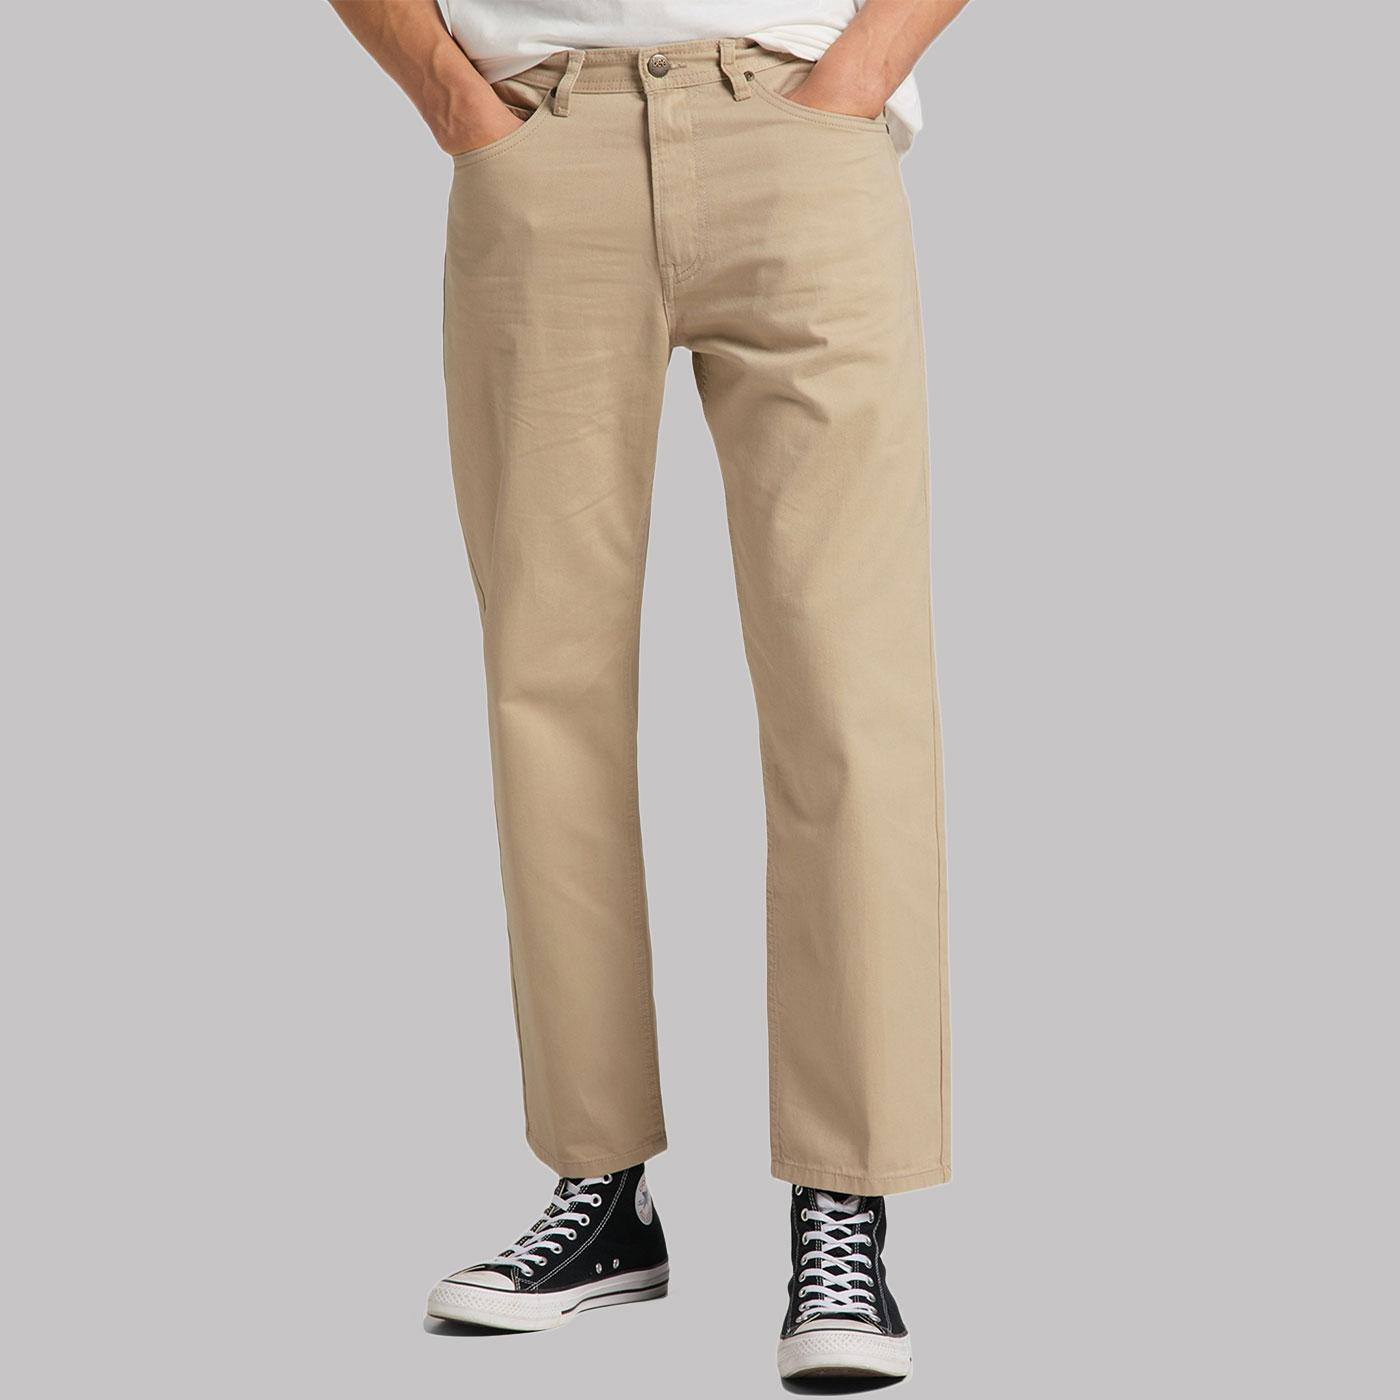 Eden LEE JEANS Men's Retro Cropped Chinos (SS)